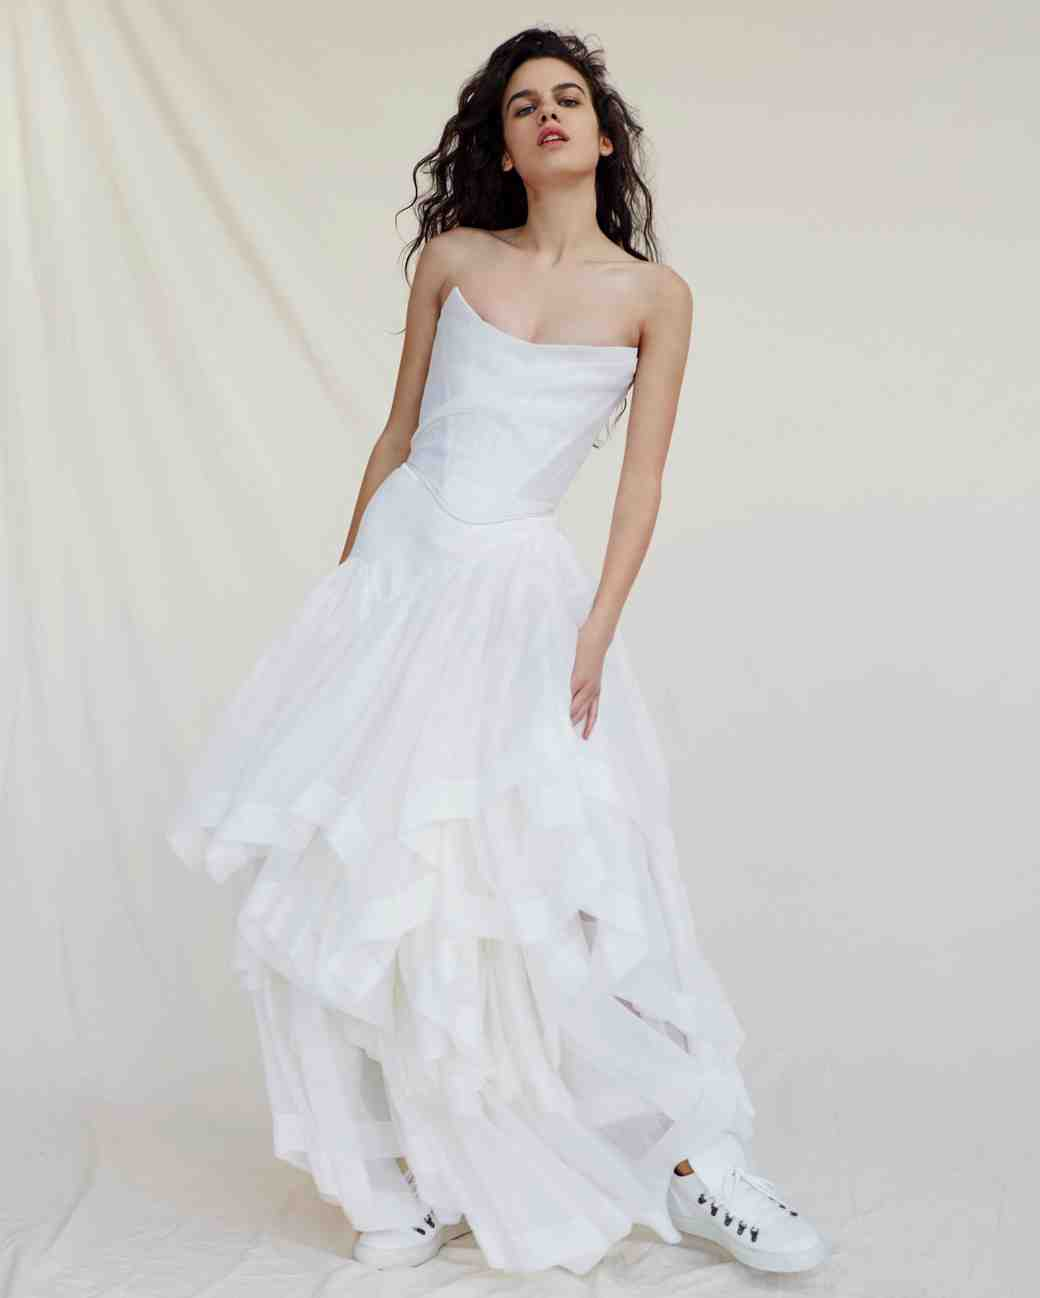 Vivienne Westwood Wedding Dresses – Fashion dresses